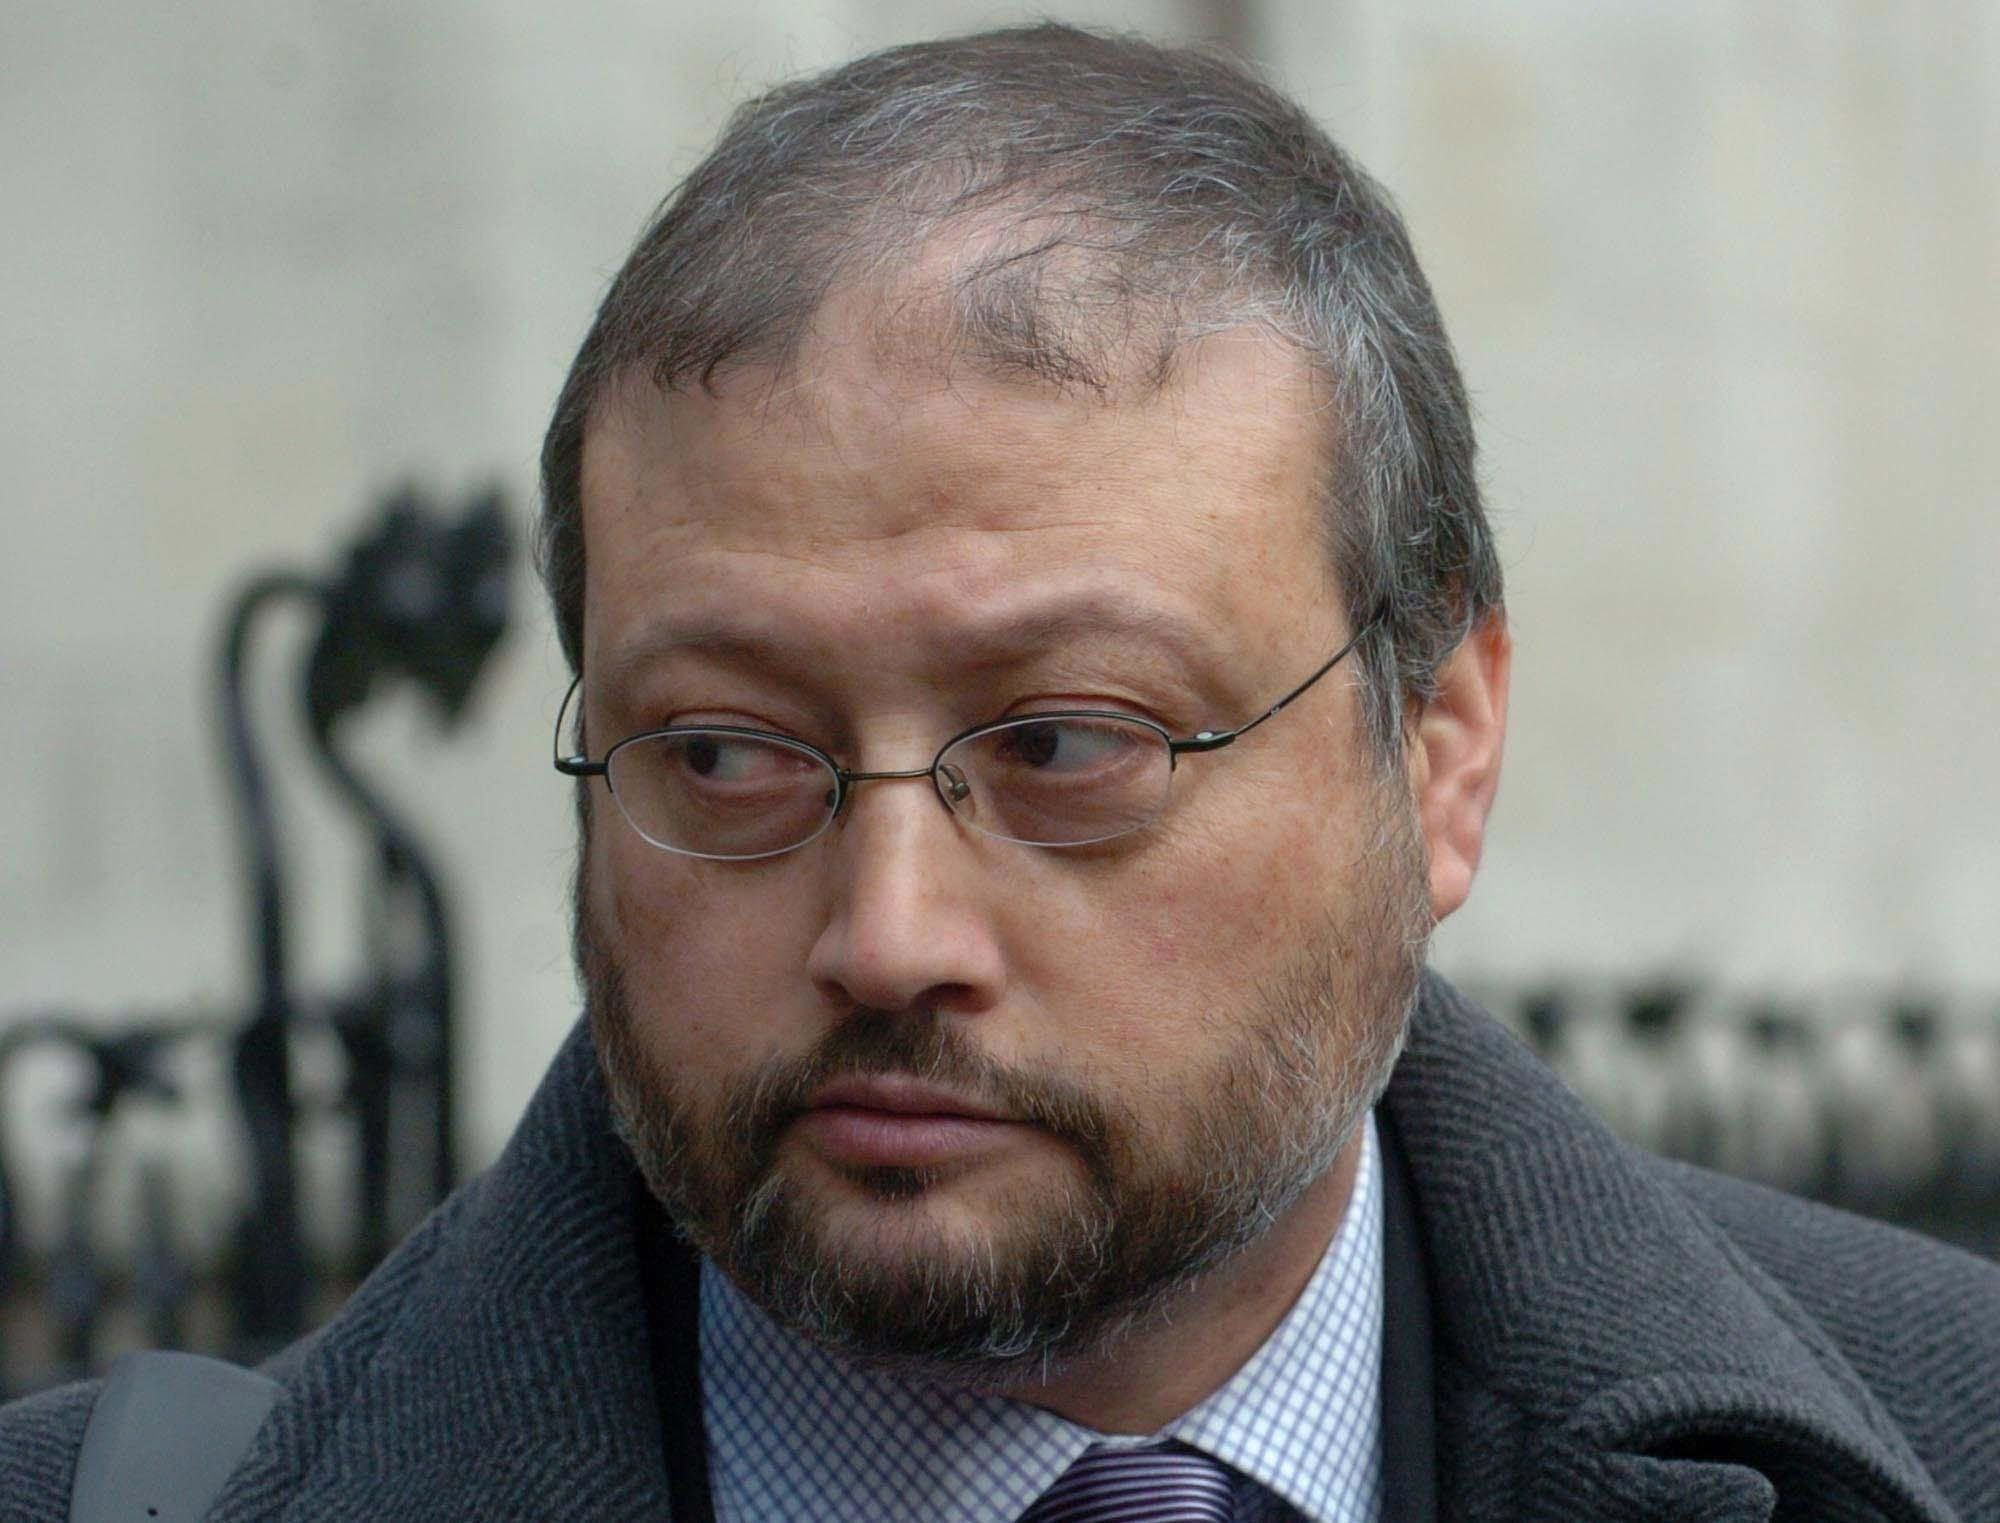 What We Know So Far About The Case Of Missing Saudi Journalist Jamal